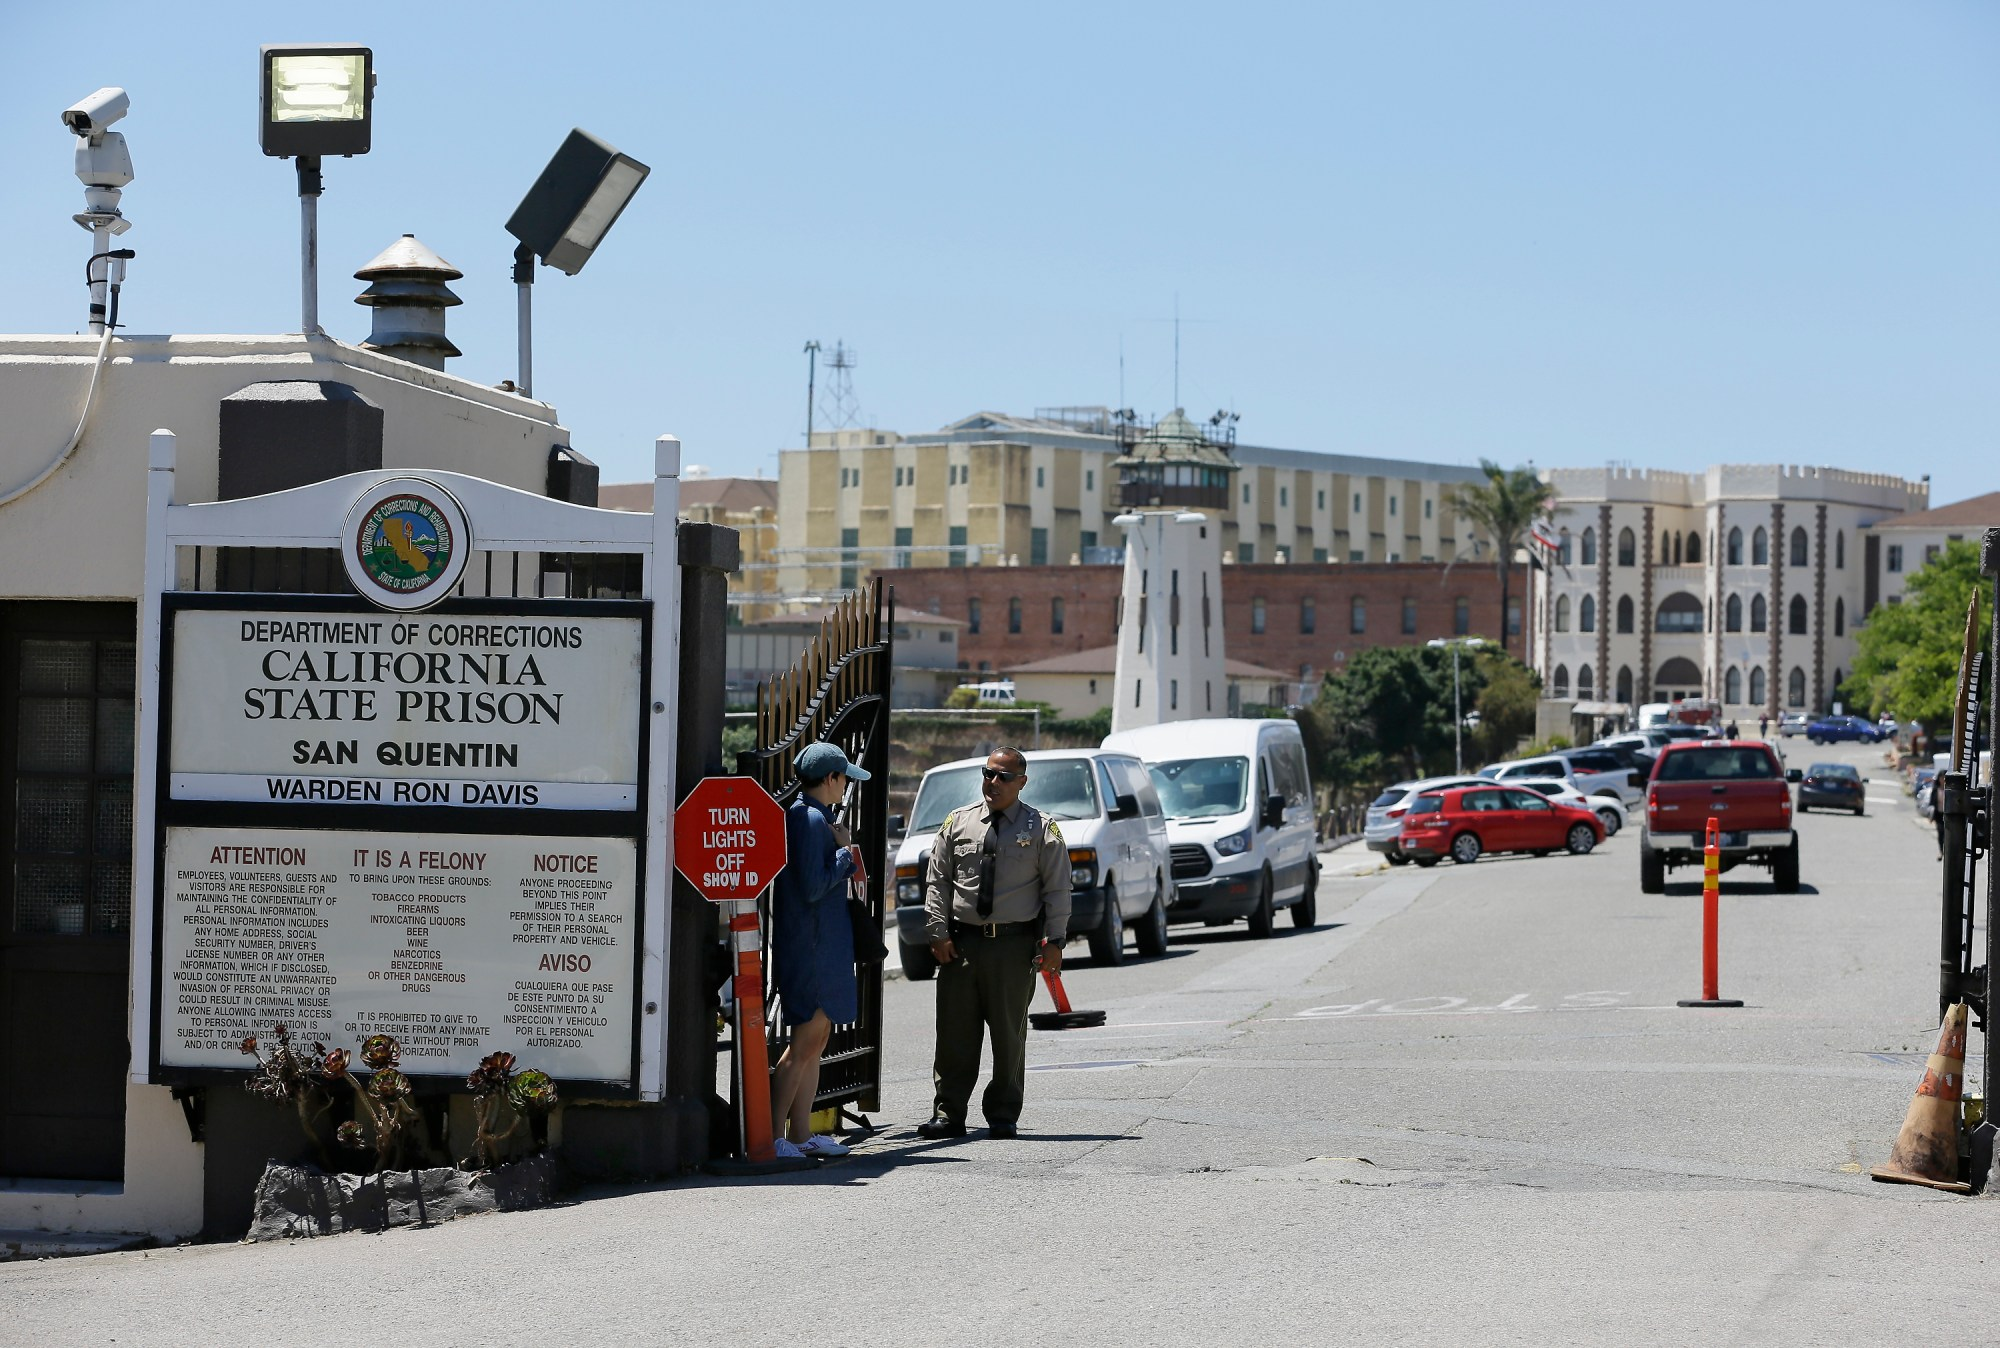 A Department of Corrections officer guards the main entryway leading into San Quentin State Prison on July 24, 2019. (AP Photo/Eric Risberg, File)